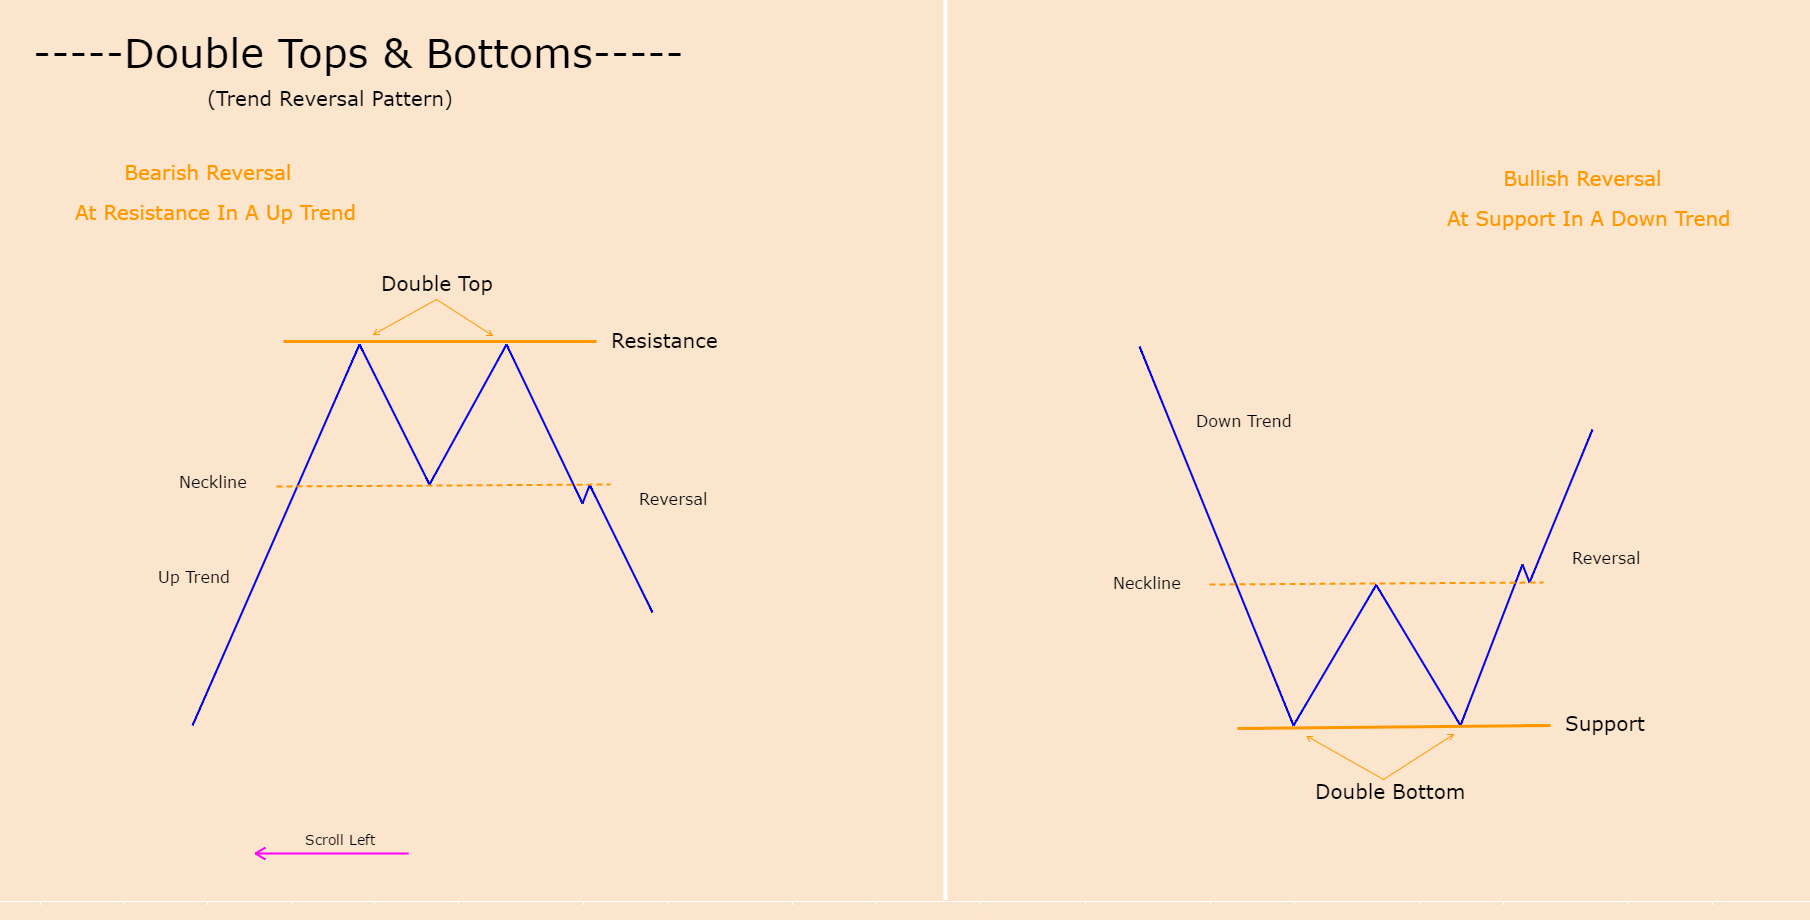 DOUBLE TOPS & BOTTOMS (TREND REVERSAL)